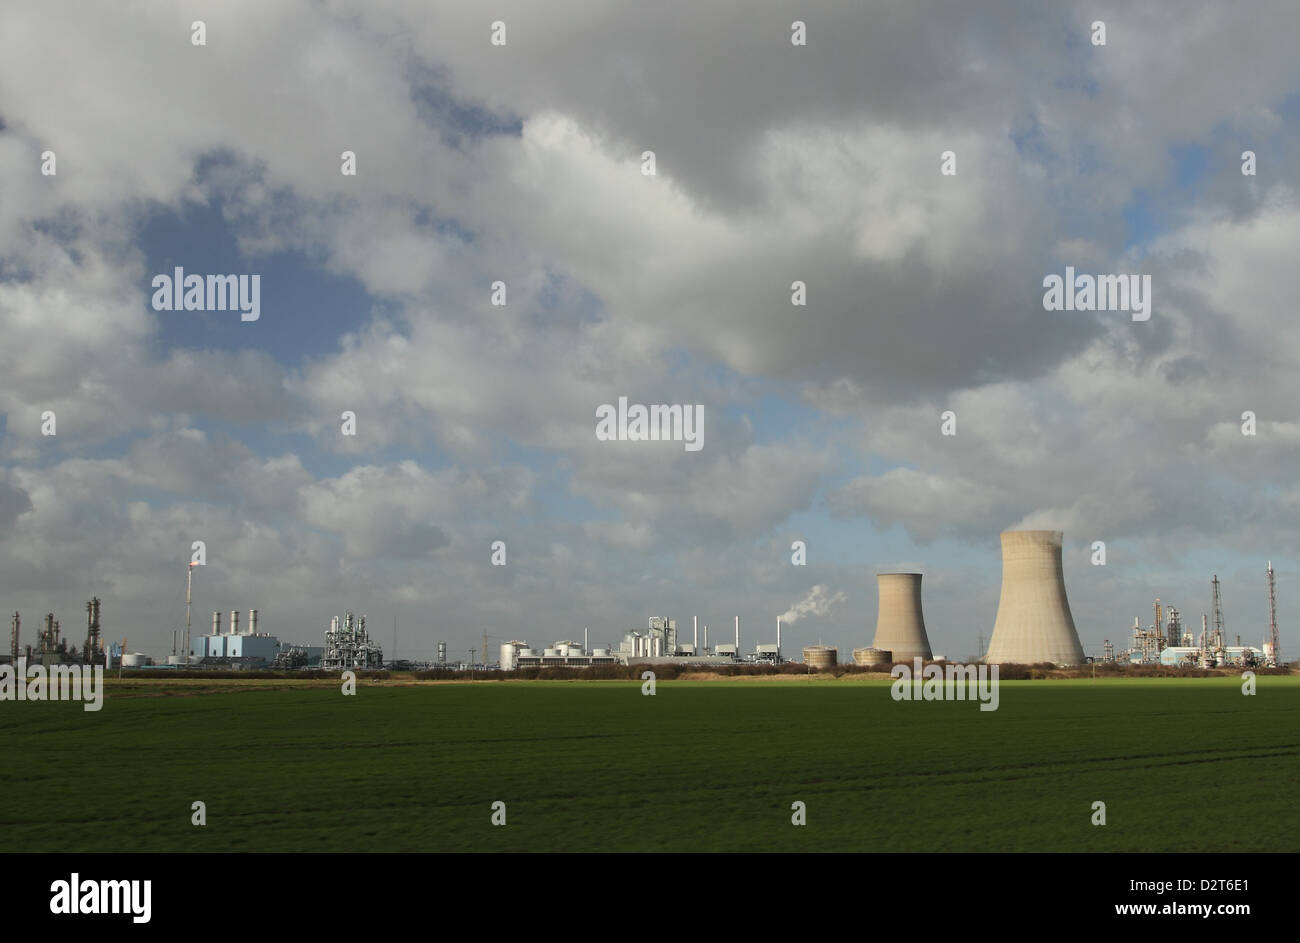 petro chemical plant with cooling towers at Paul near Hull UK - Stock Image